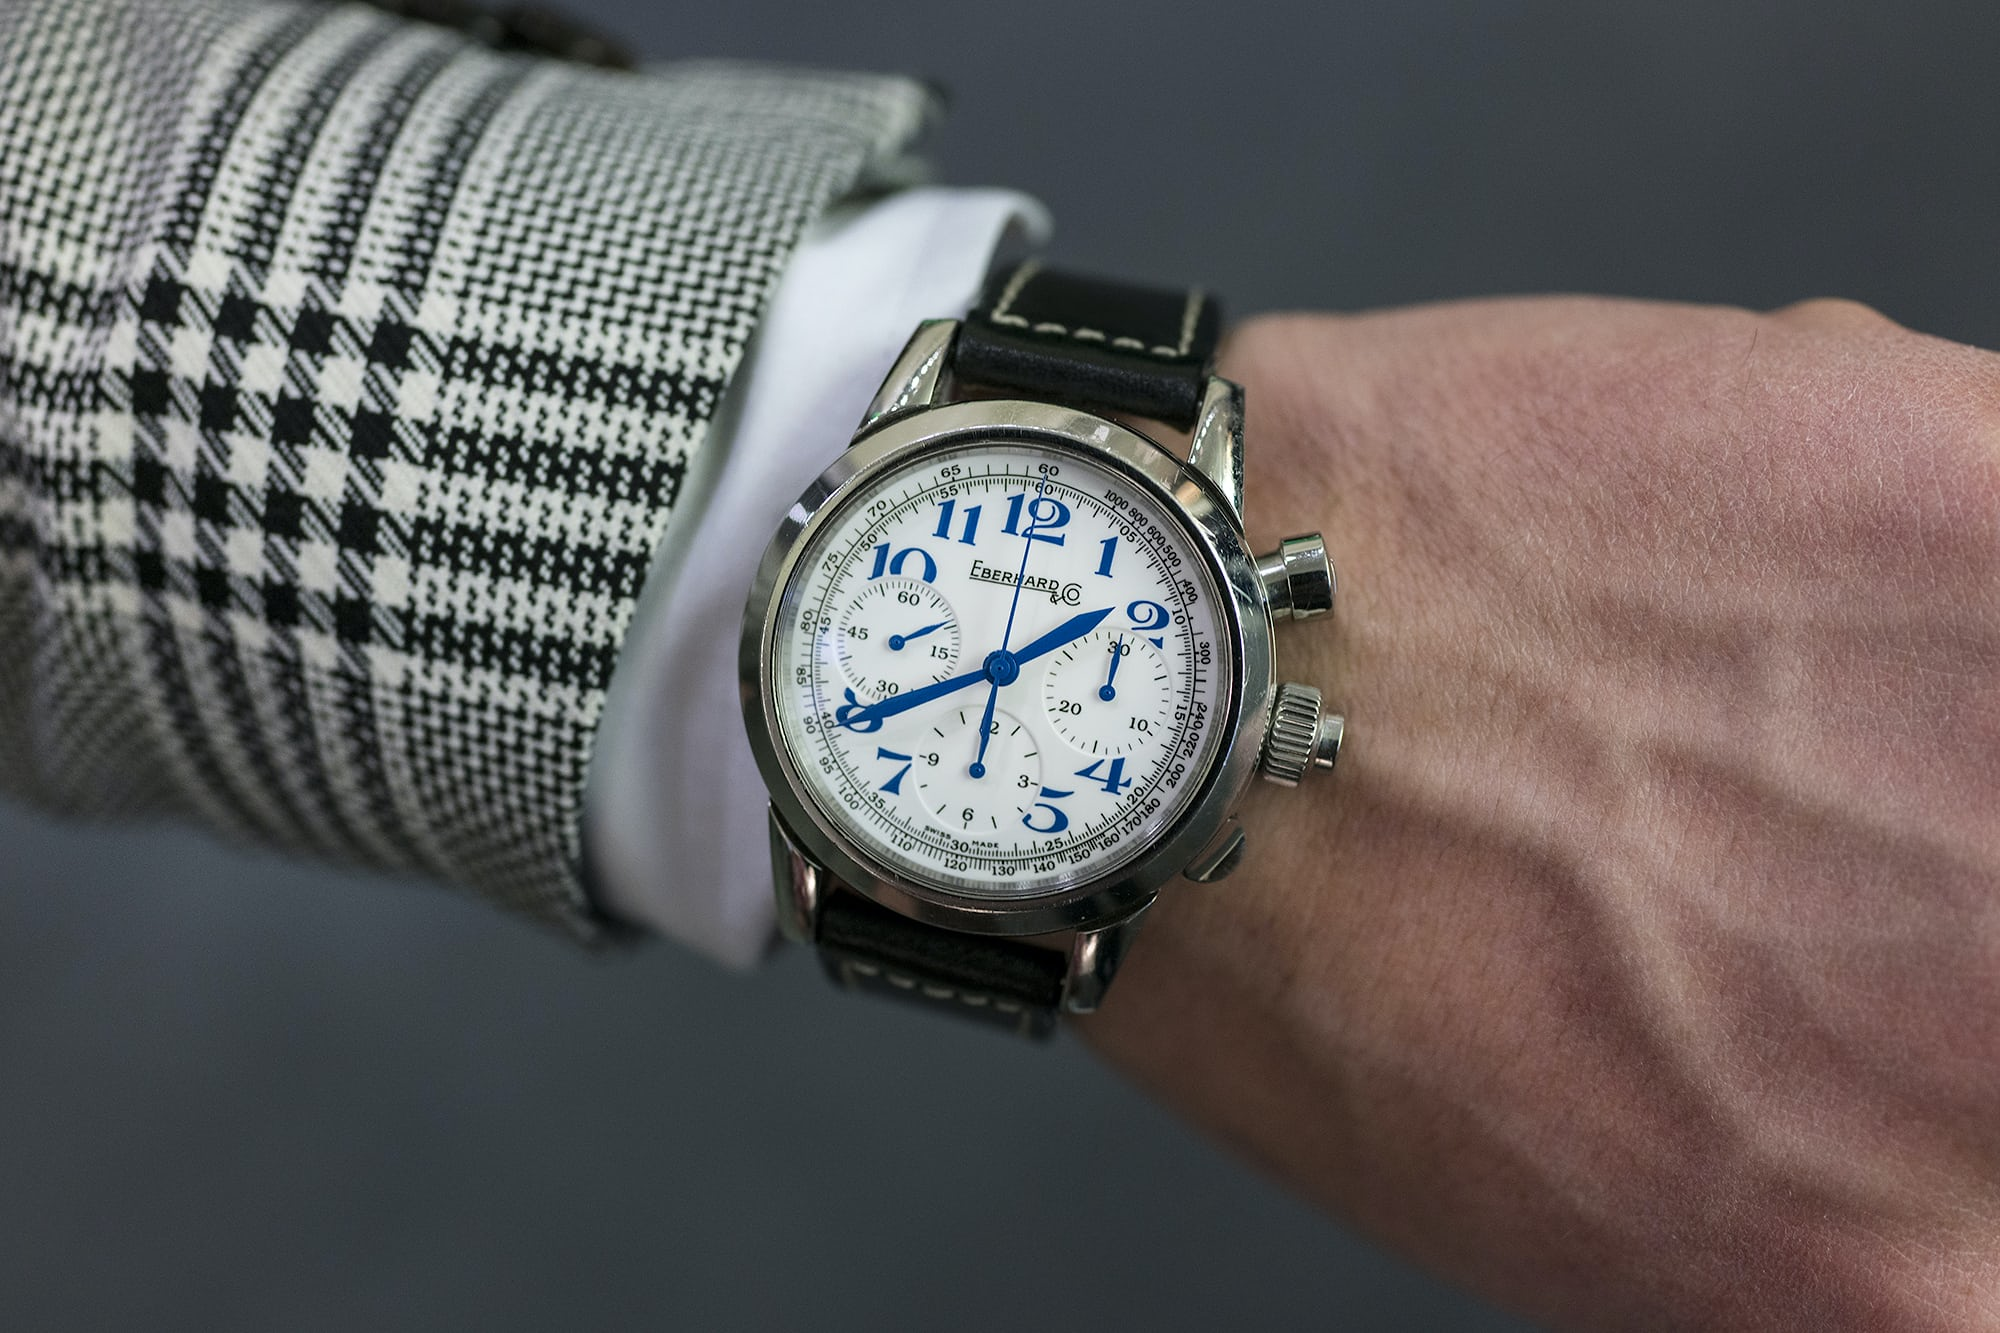 Photo Report: The Fashion And Watches Of Baselworld 2018 Photo Report: The Fashion And Watches Of Baselworld 2018 DSC00935 copy